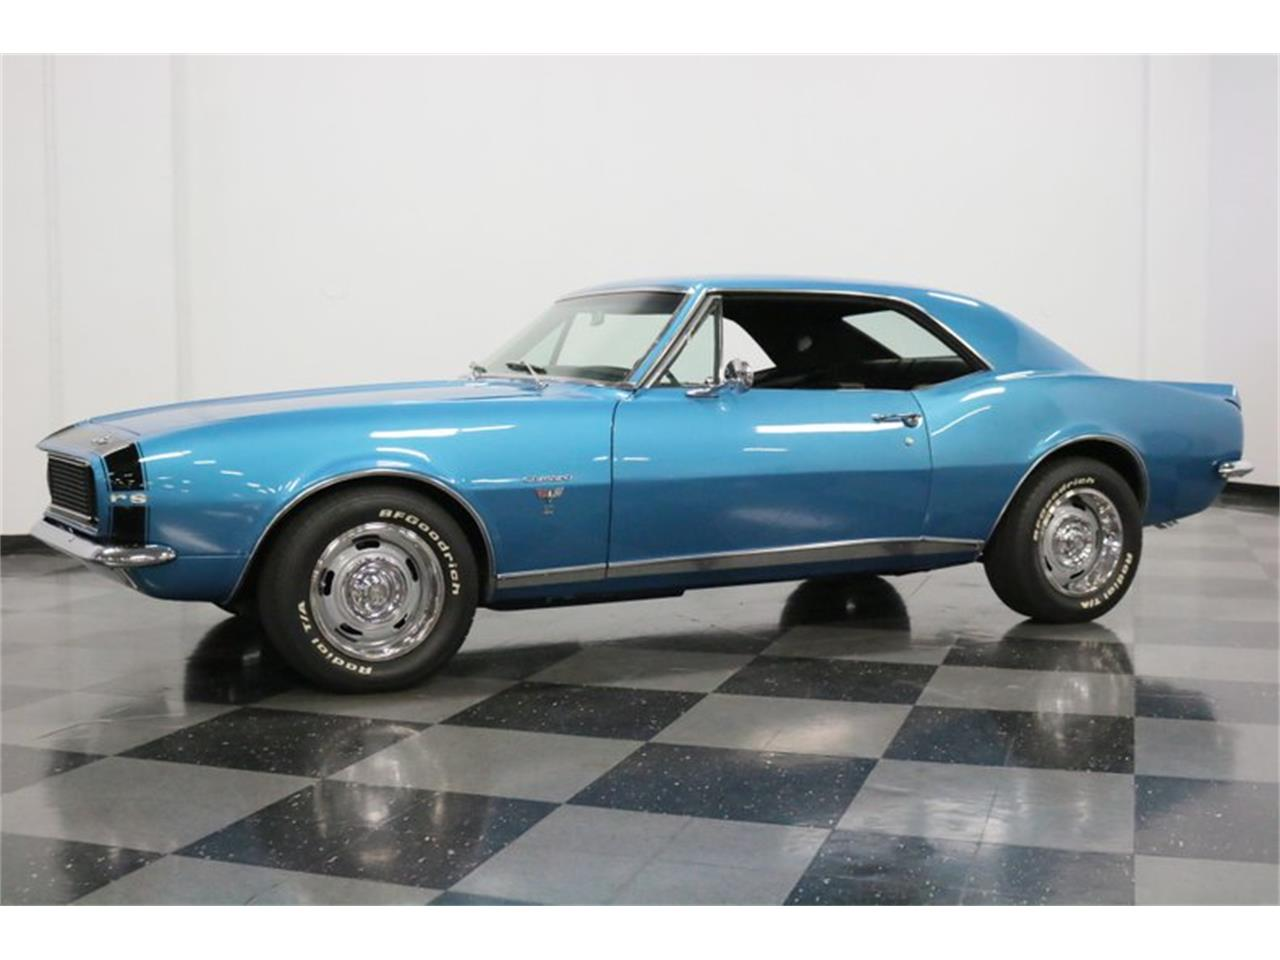 For Sale: 1967 Chevrolet Camaro in Ft Worth, Texas